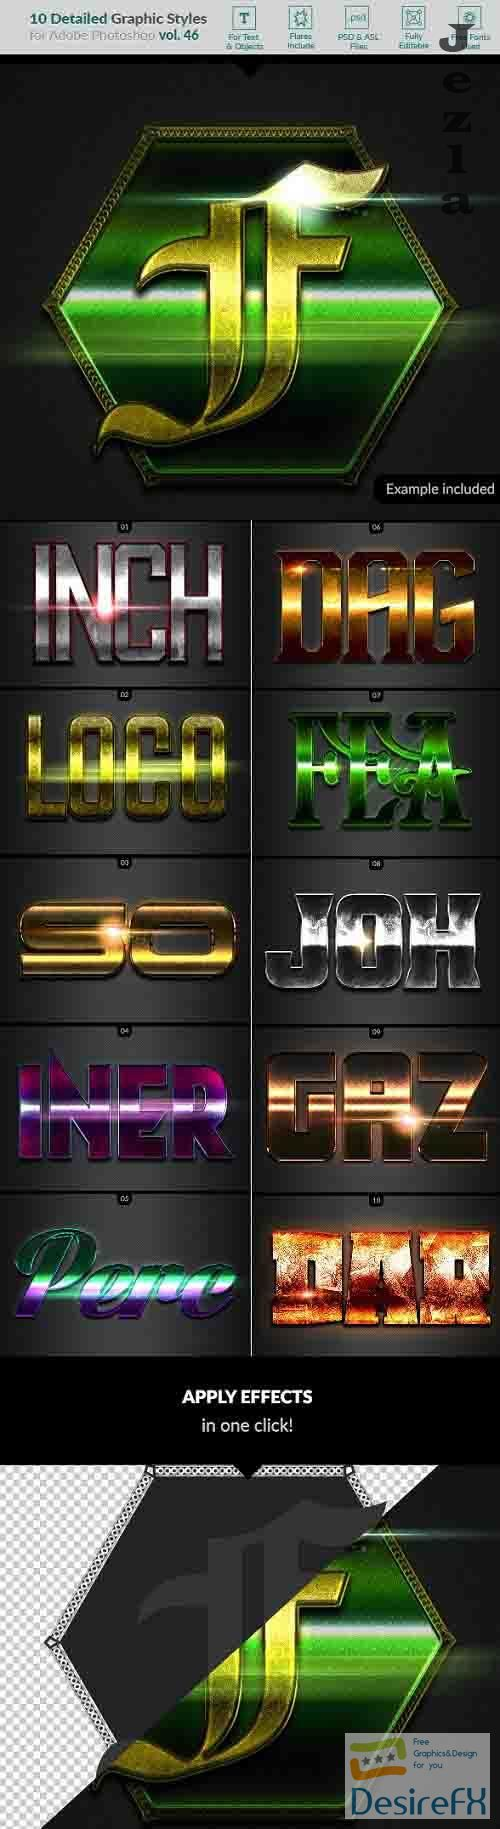 10 Text Effects Vol. 46 - 25813616